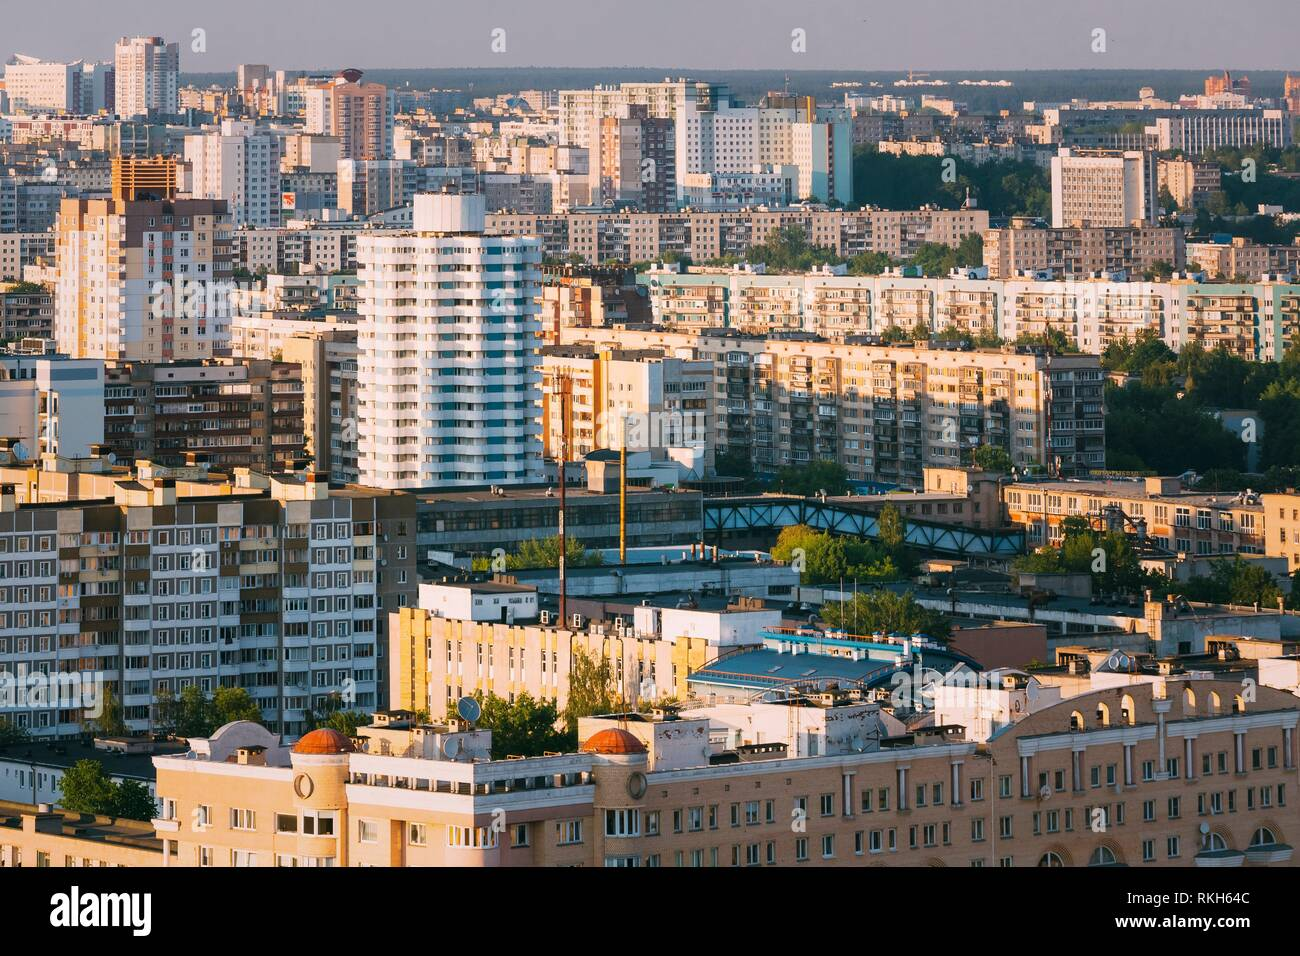 Aerial urban view, cityscape of Minsk, Belarus. - Stock Image